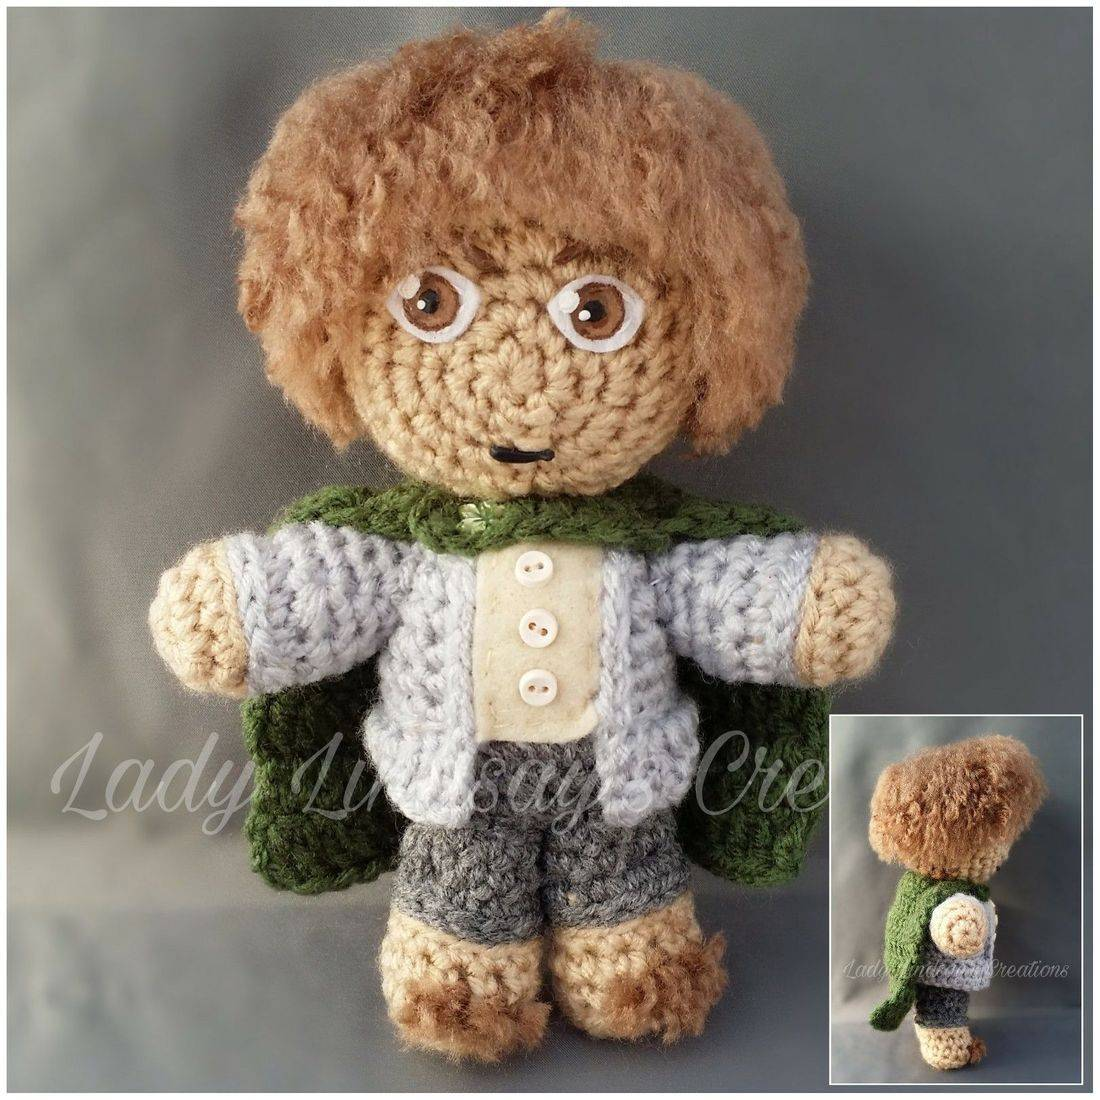 Sam, Samwise, Samwise Gamgee, Sean Astin, Amigurumi, Plush, Doll, Crochet, handmade, craft, artisan,  Lord of the Rings, The Hobbit, Shop Small